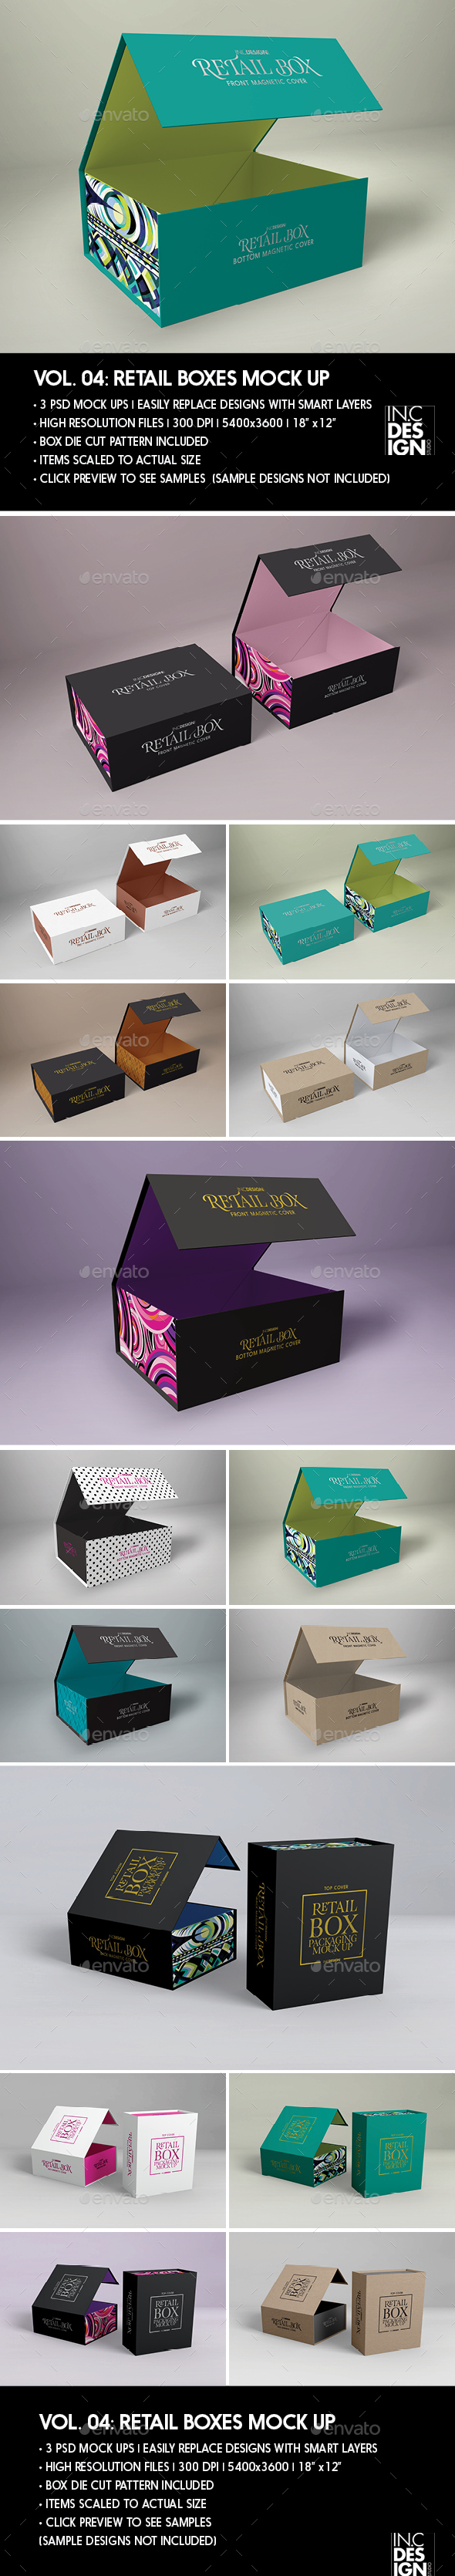 Retail Boxes Vol.4: Magnetic Box Packaging Mock Ups - Packaging Product Mock-Ups